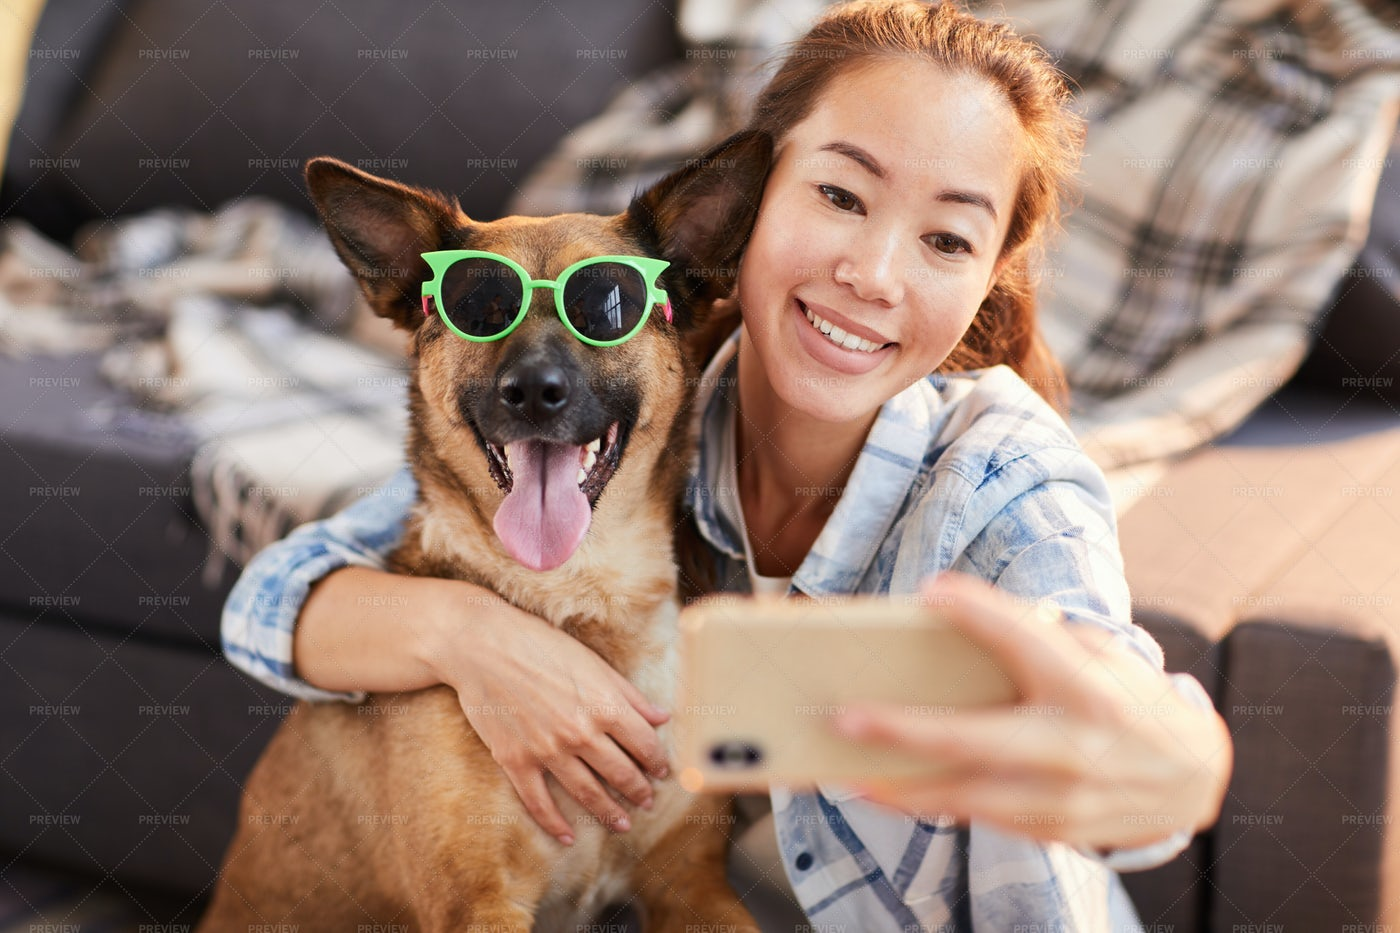 Funny Portrait With Dog: Stock Photos